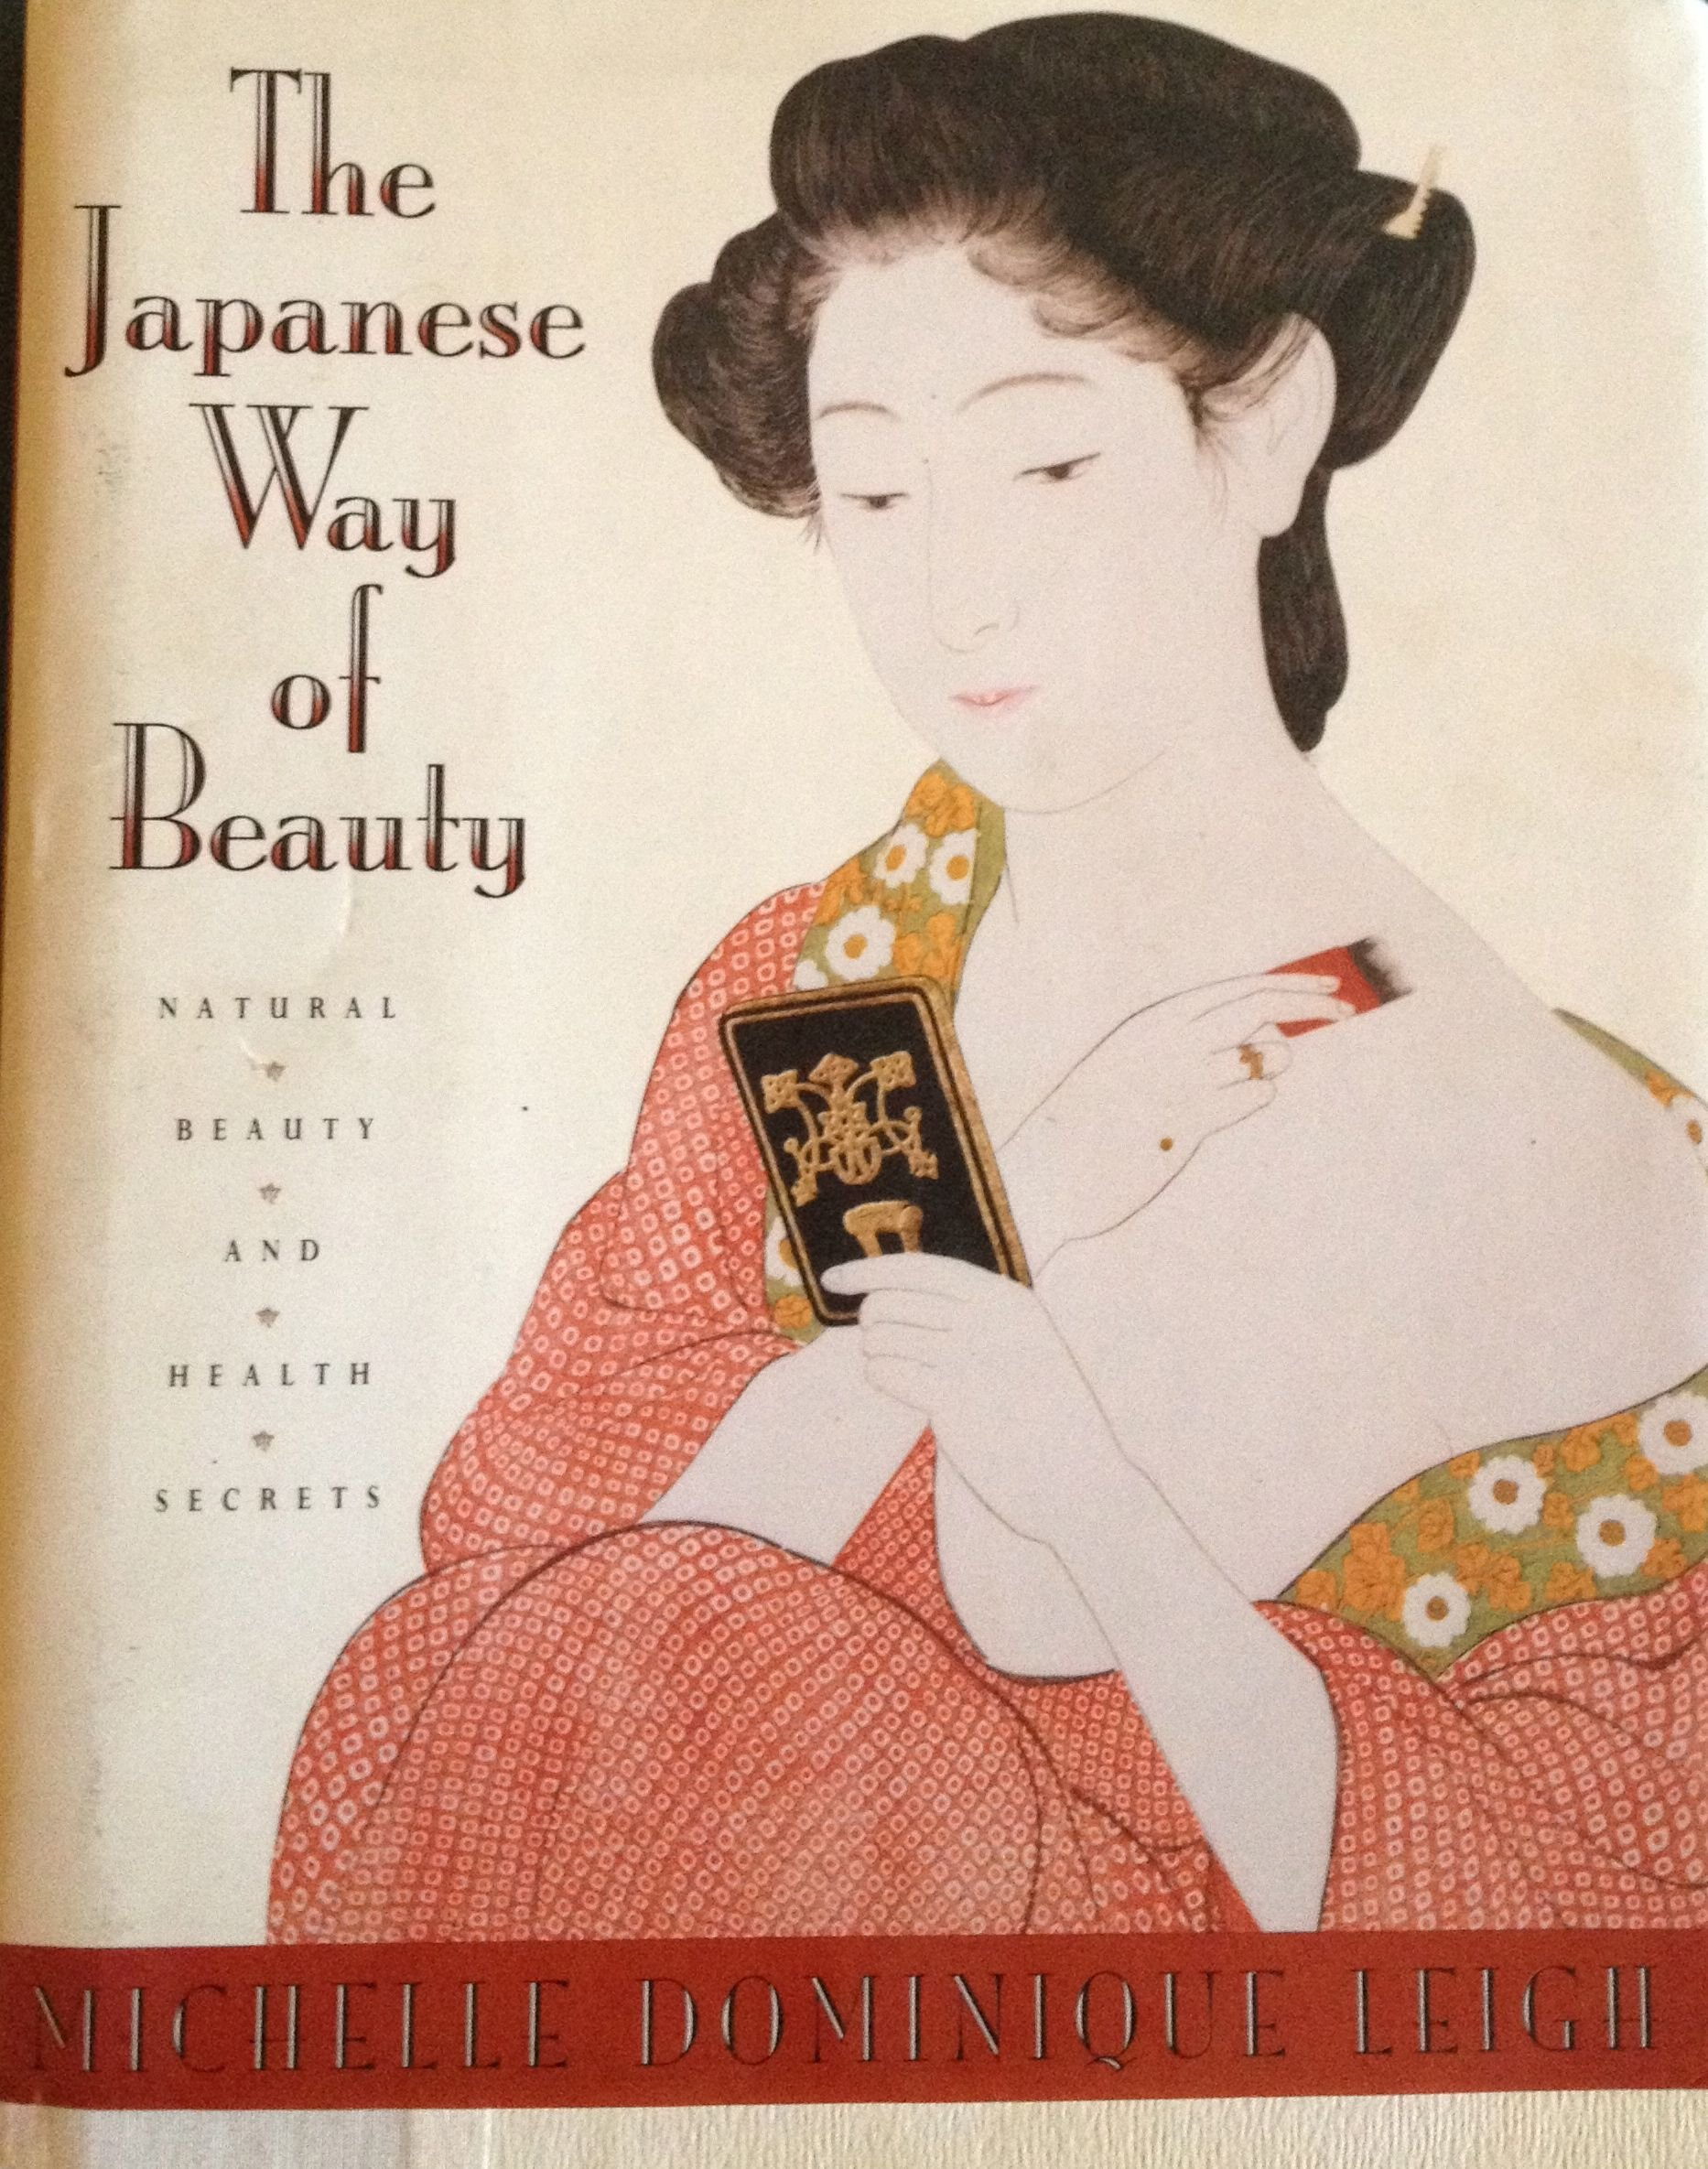 The japanese way of beauty natural beauty and health secrets the japanese way of beauty natural beauty and health secrets michelle dominique leigh 9781559720656 amazon books fandeluxe